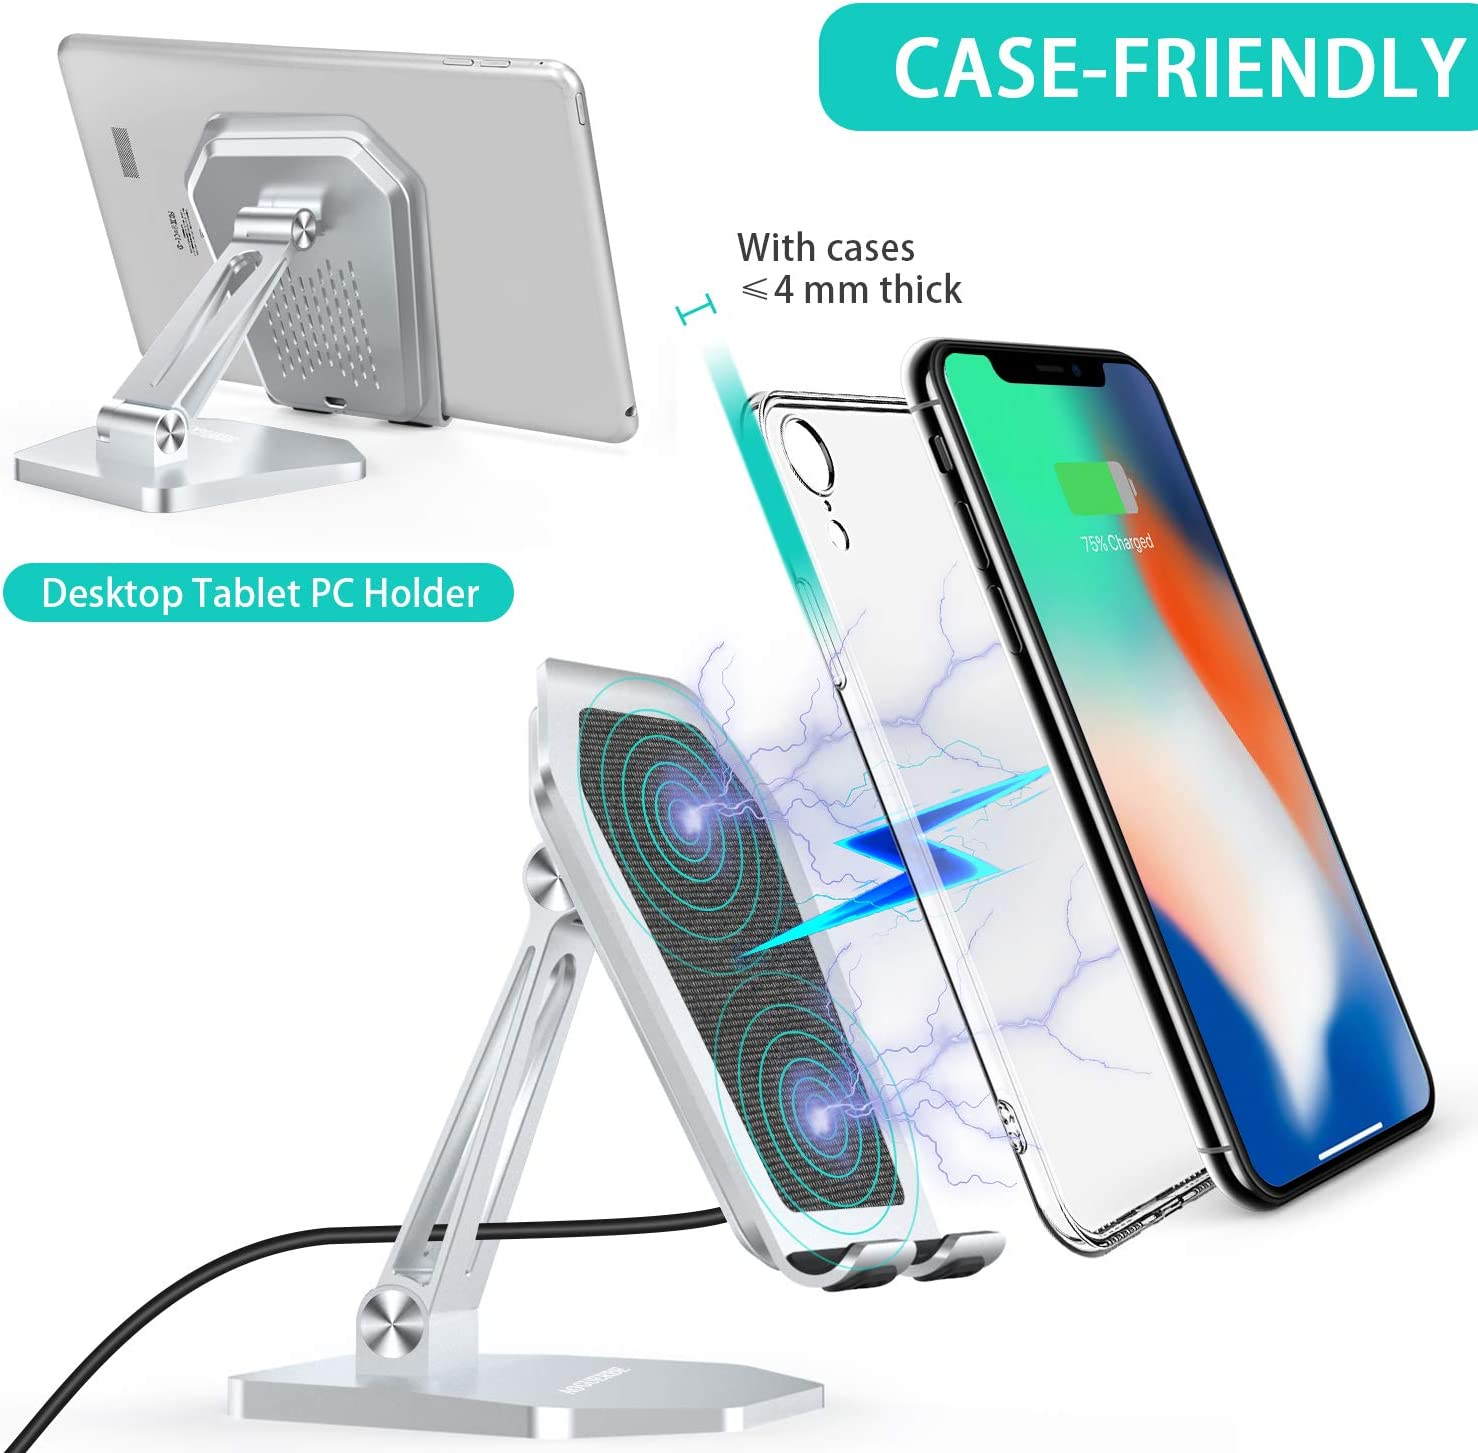 AOGUERBE Wireless Charger Silver No AC Adapter 7.5W//10W//15W Aluminum Alloy Fast Charging Stand Desktop Holder Compatible with iPhone 11//11 Pro Max 15W LG V30//V35//G8,10W Galaxy S20//S10,Pixel 3//4XL